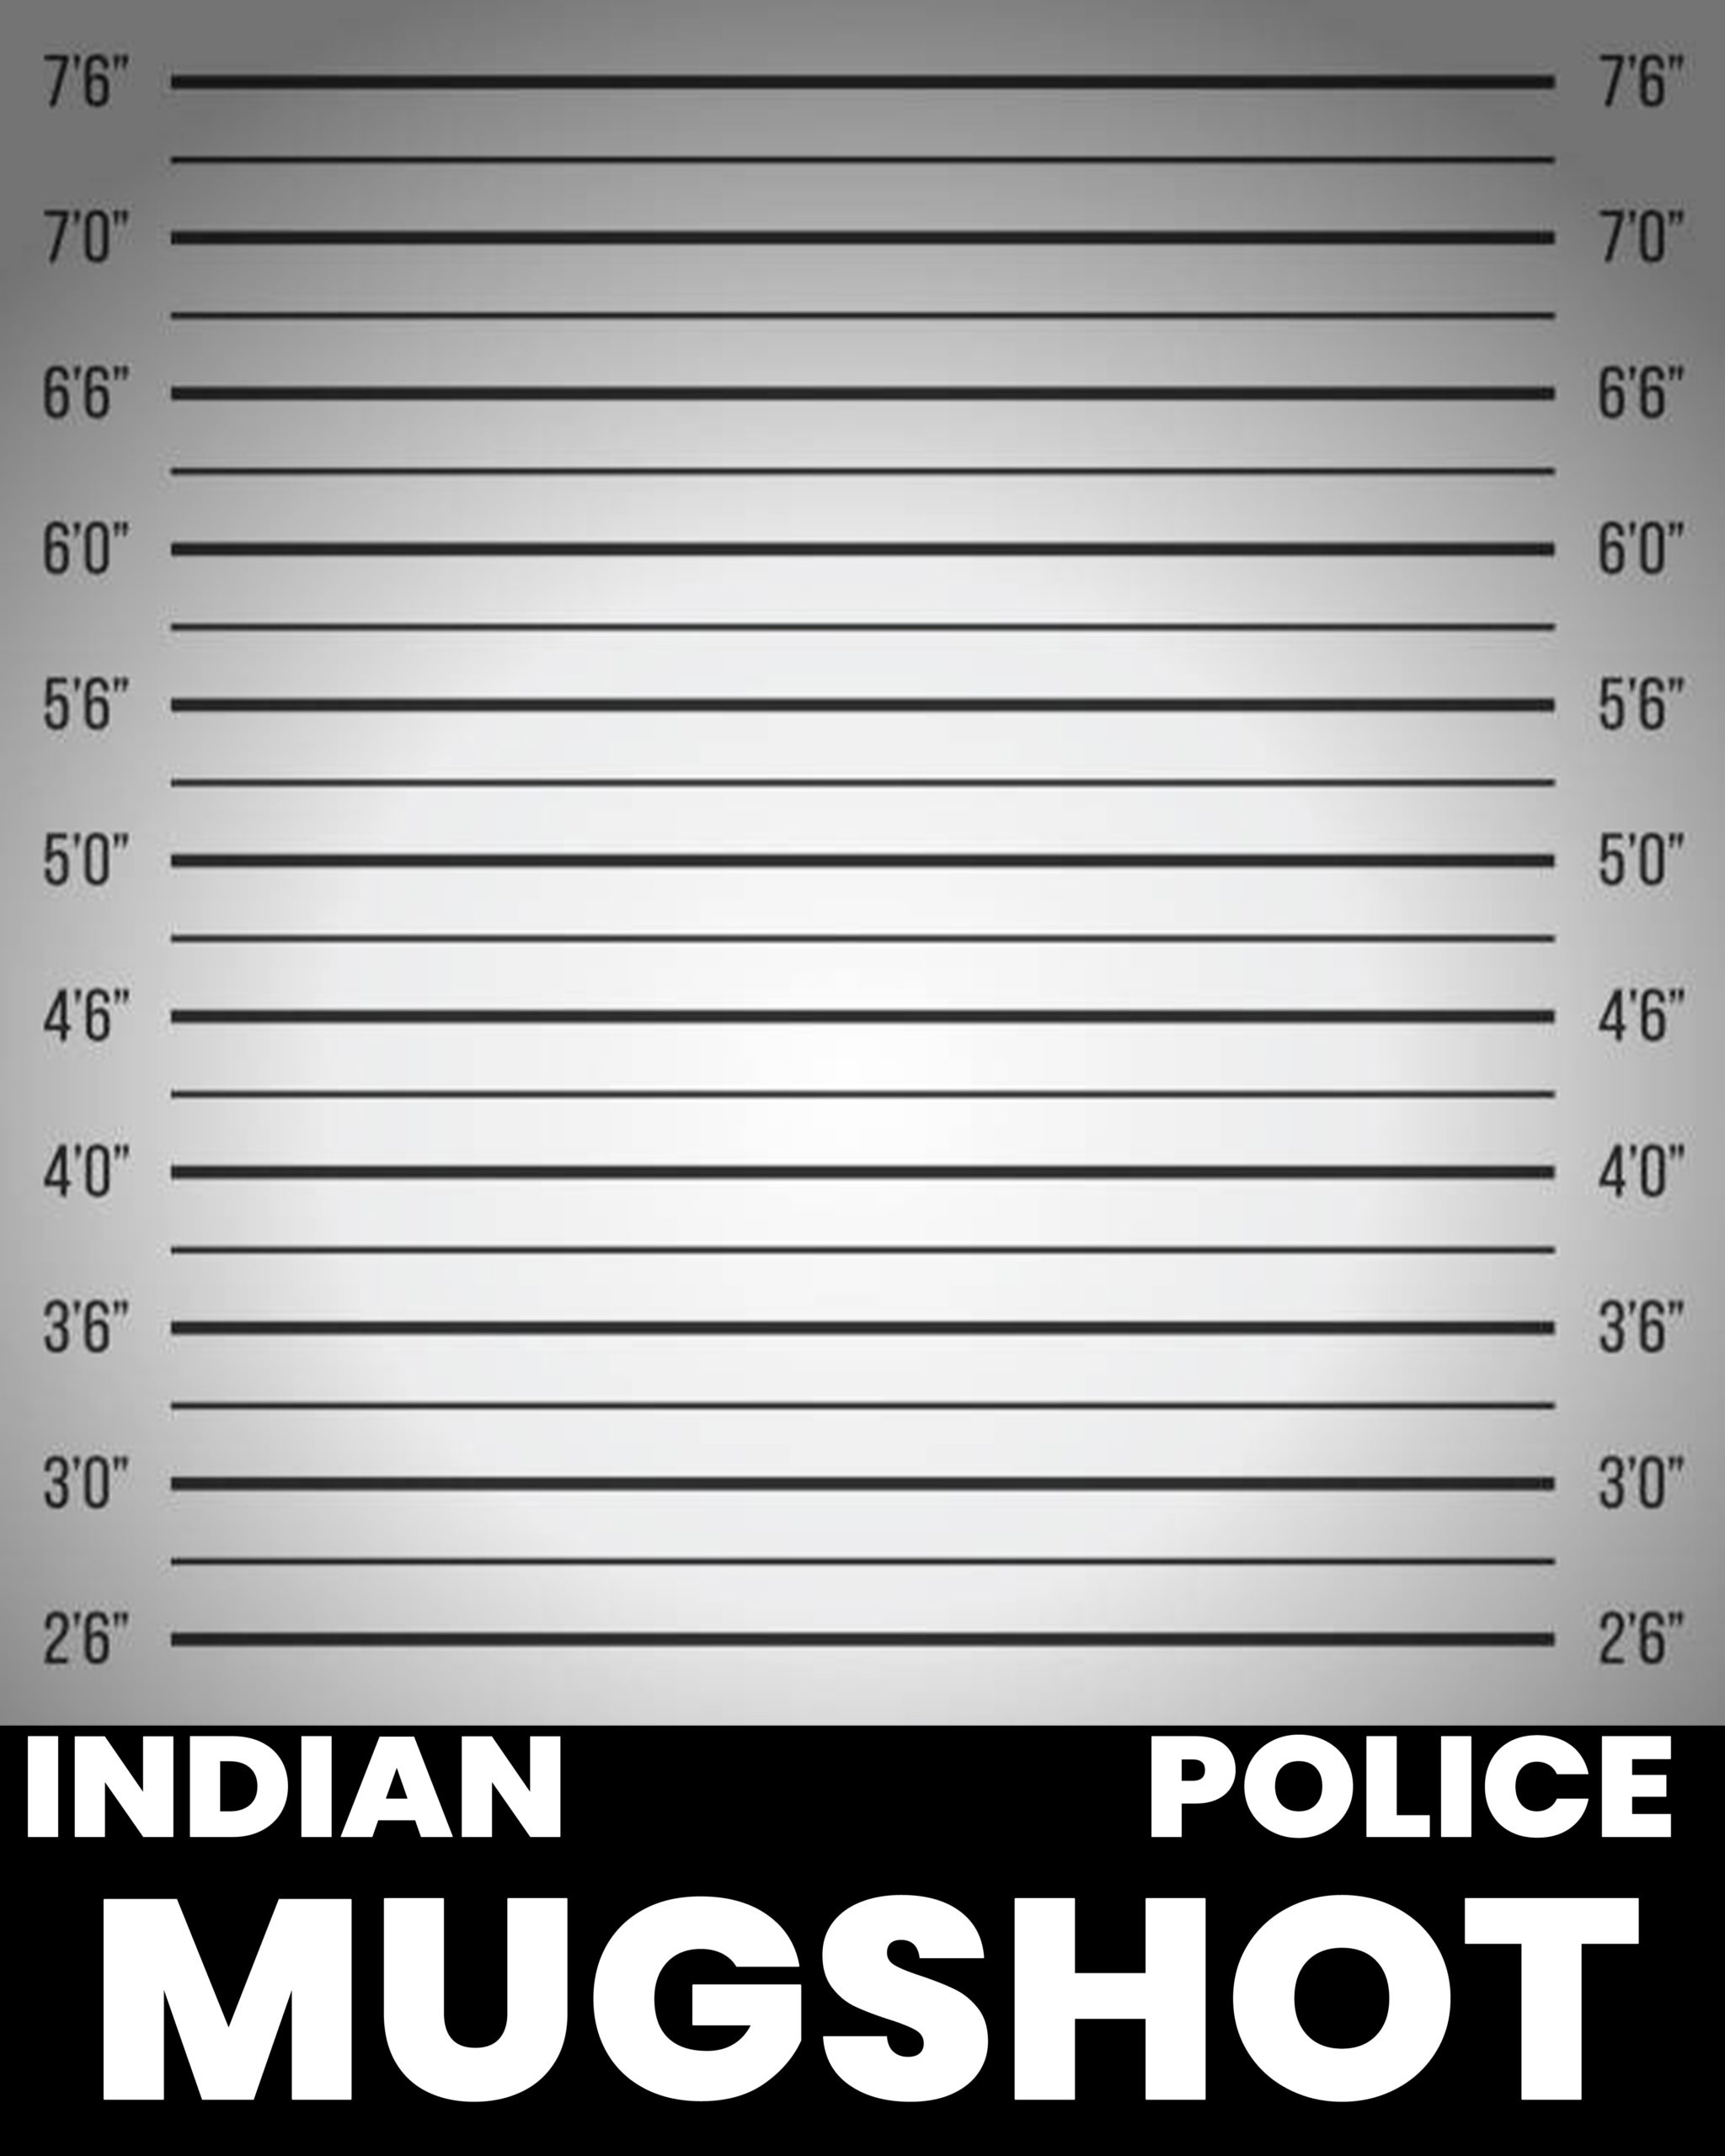 mugshot height bar wall